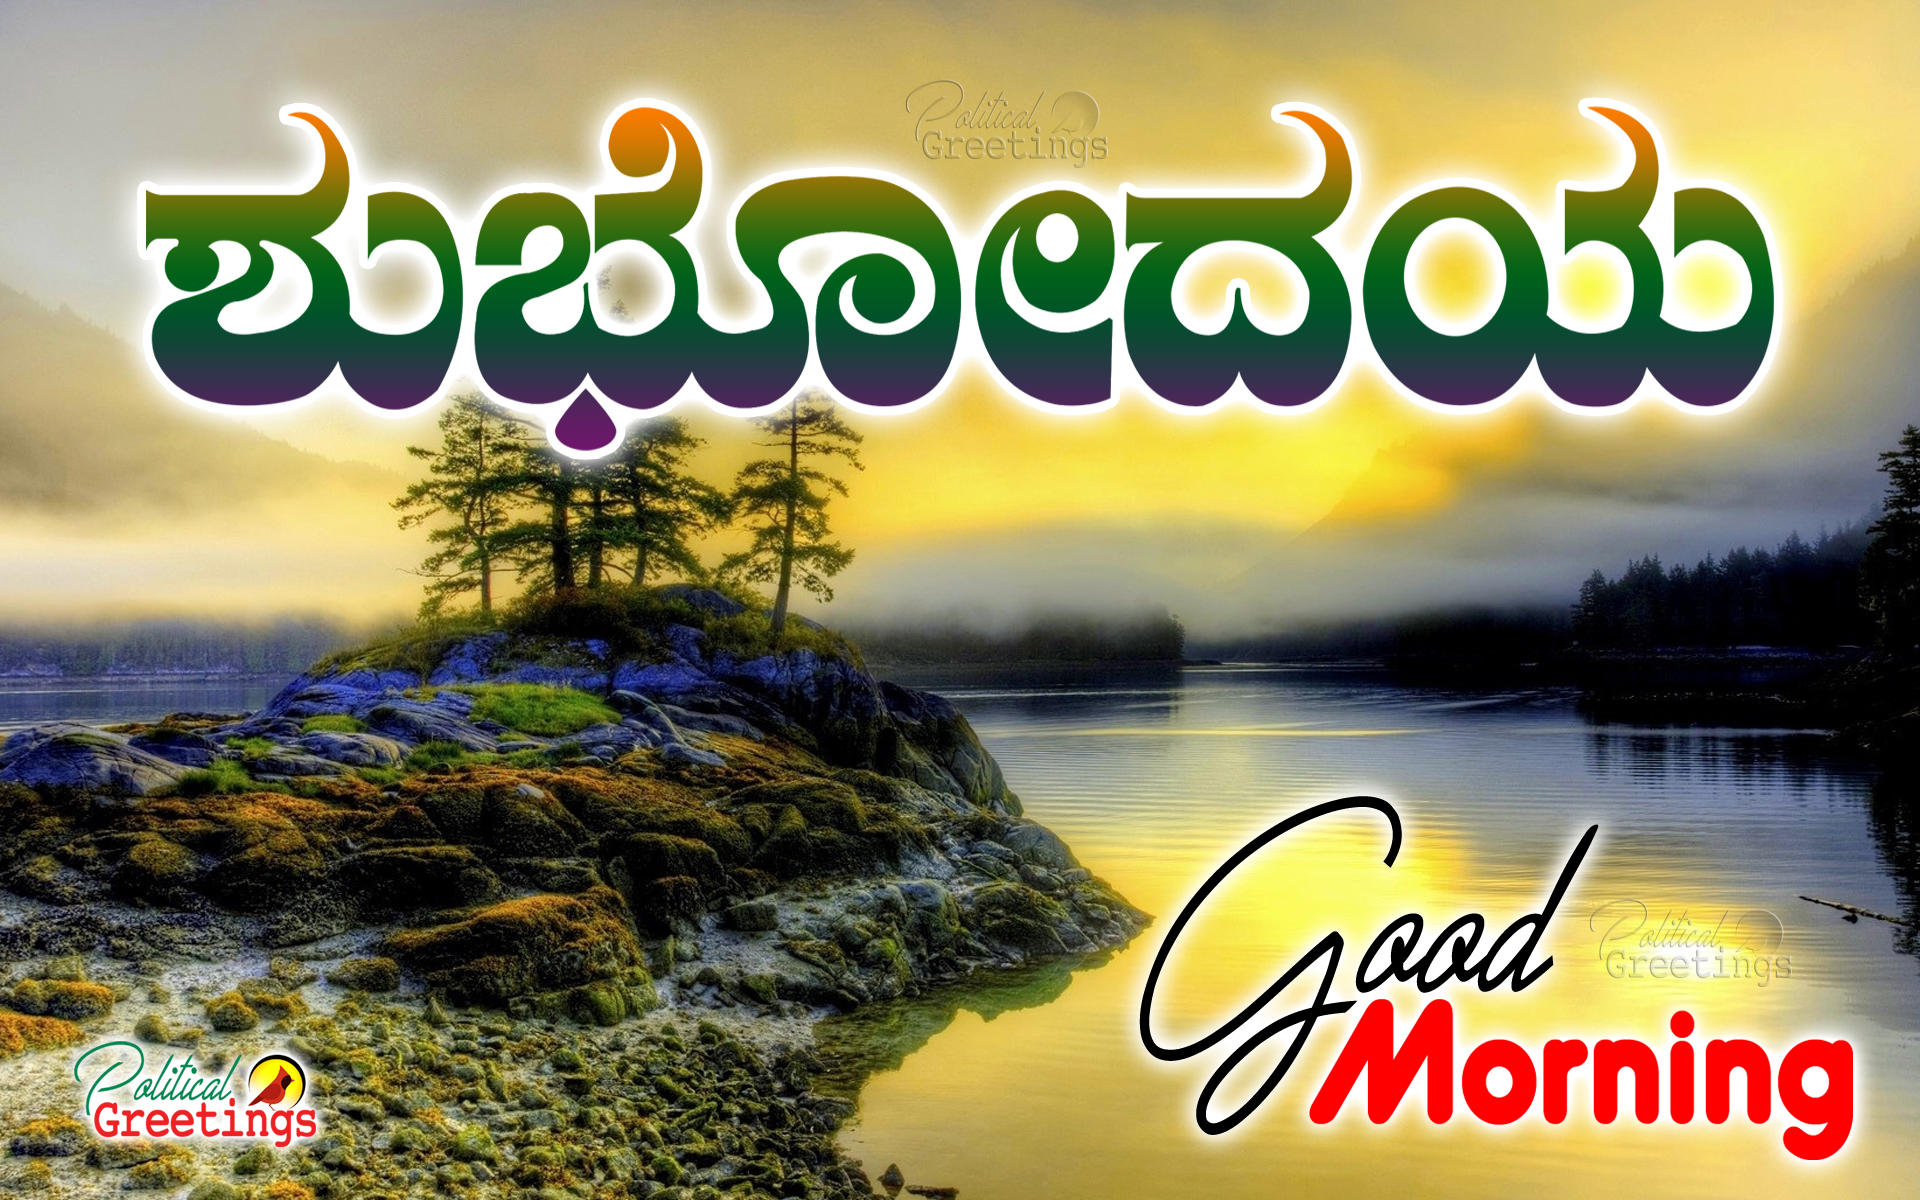 Beautiful Kannada Good Morning Greetings With Images Beautiful Good Morning In Kannada 3058925 Hd Wallpaper Backgrounds Download